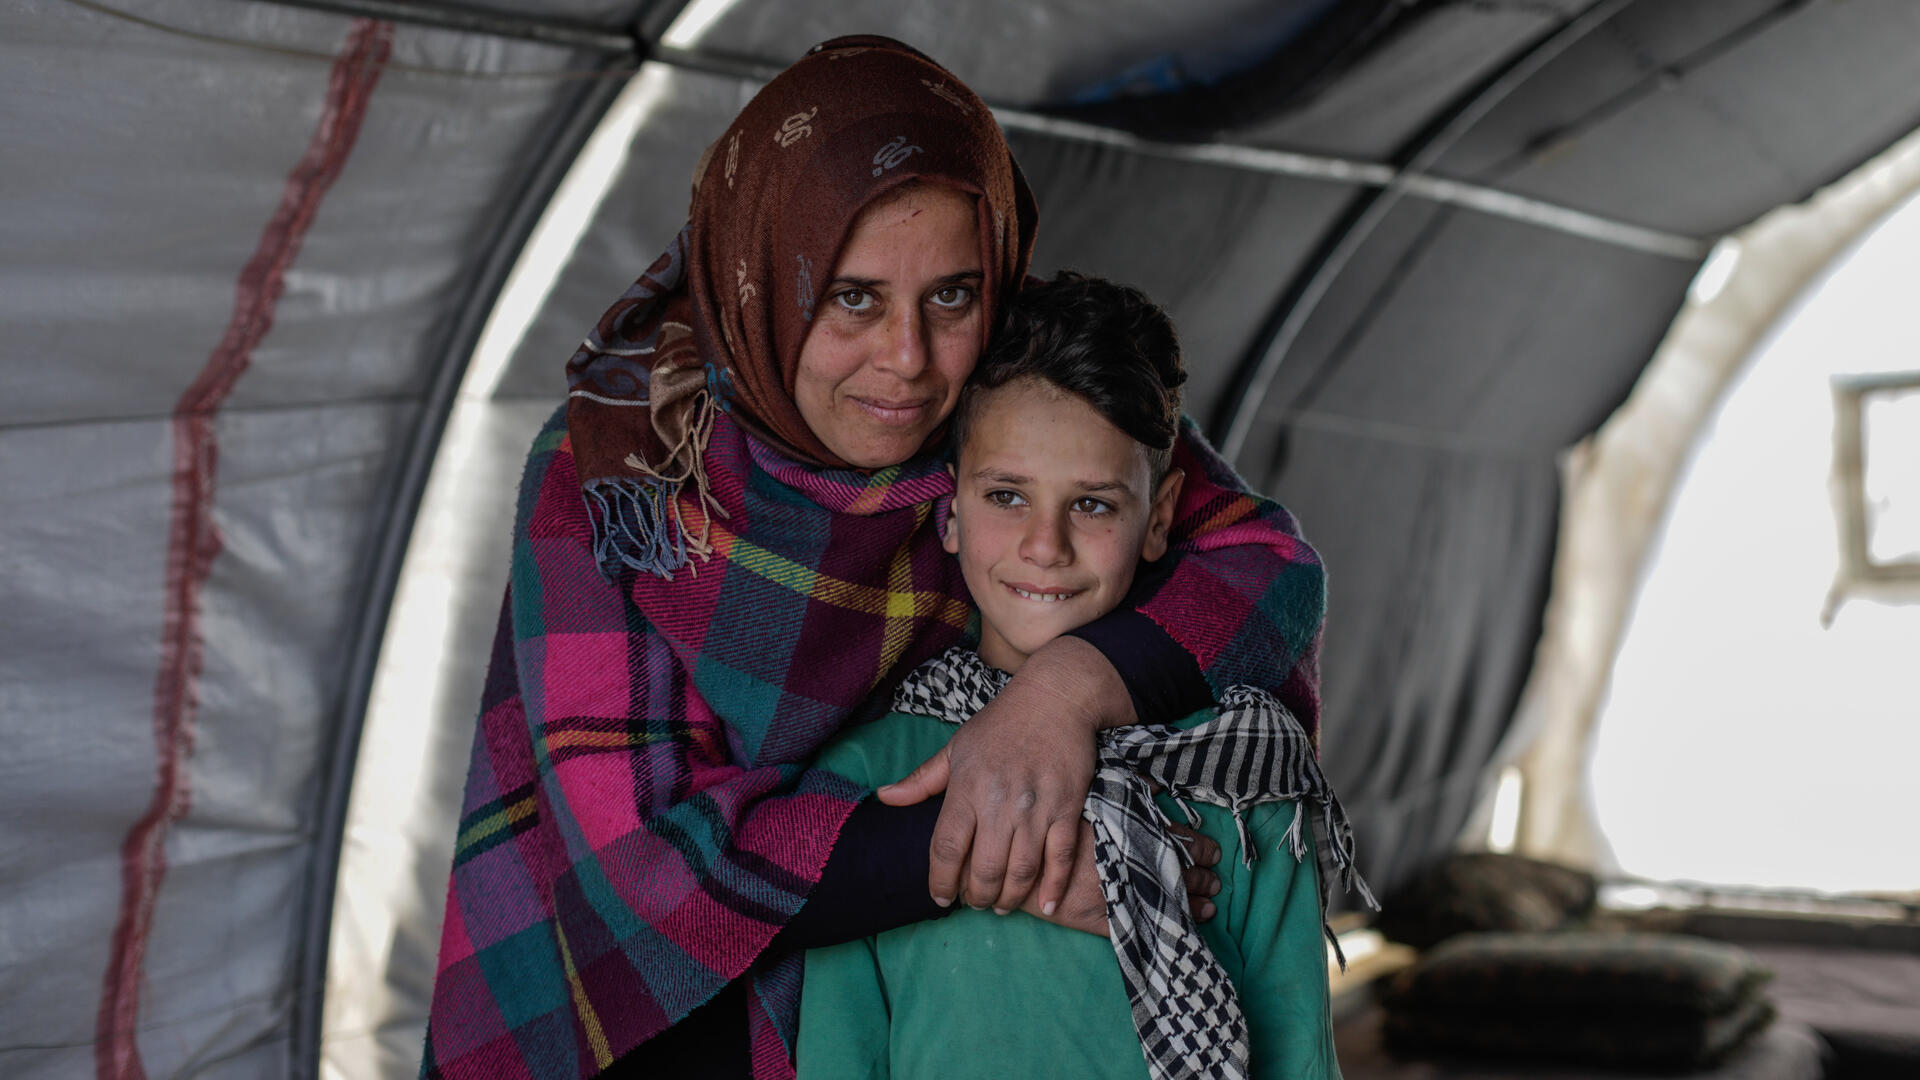 Sundus hugs her son Omar while standing behind him in a tent. Both are smiling and looking at the camera.